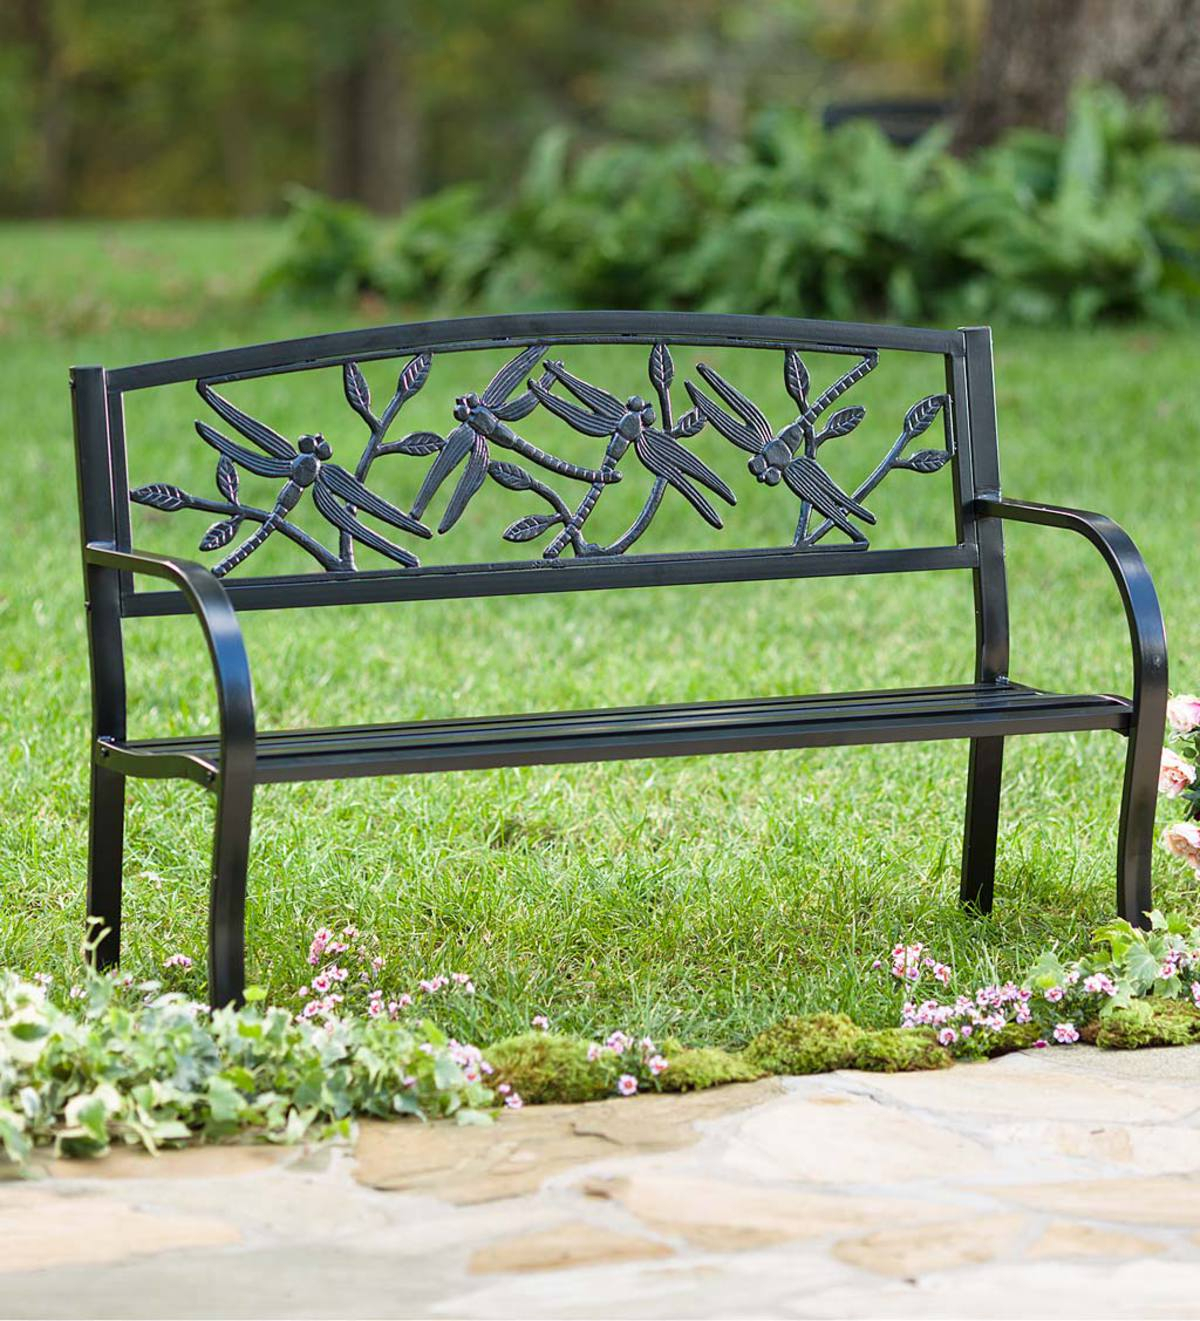 Dragonfly Metal Garden Bench With Regard To Blooming Iron Garden Benches (View 13 of 25)